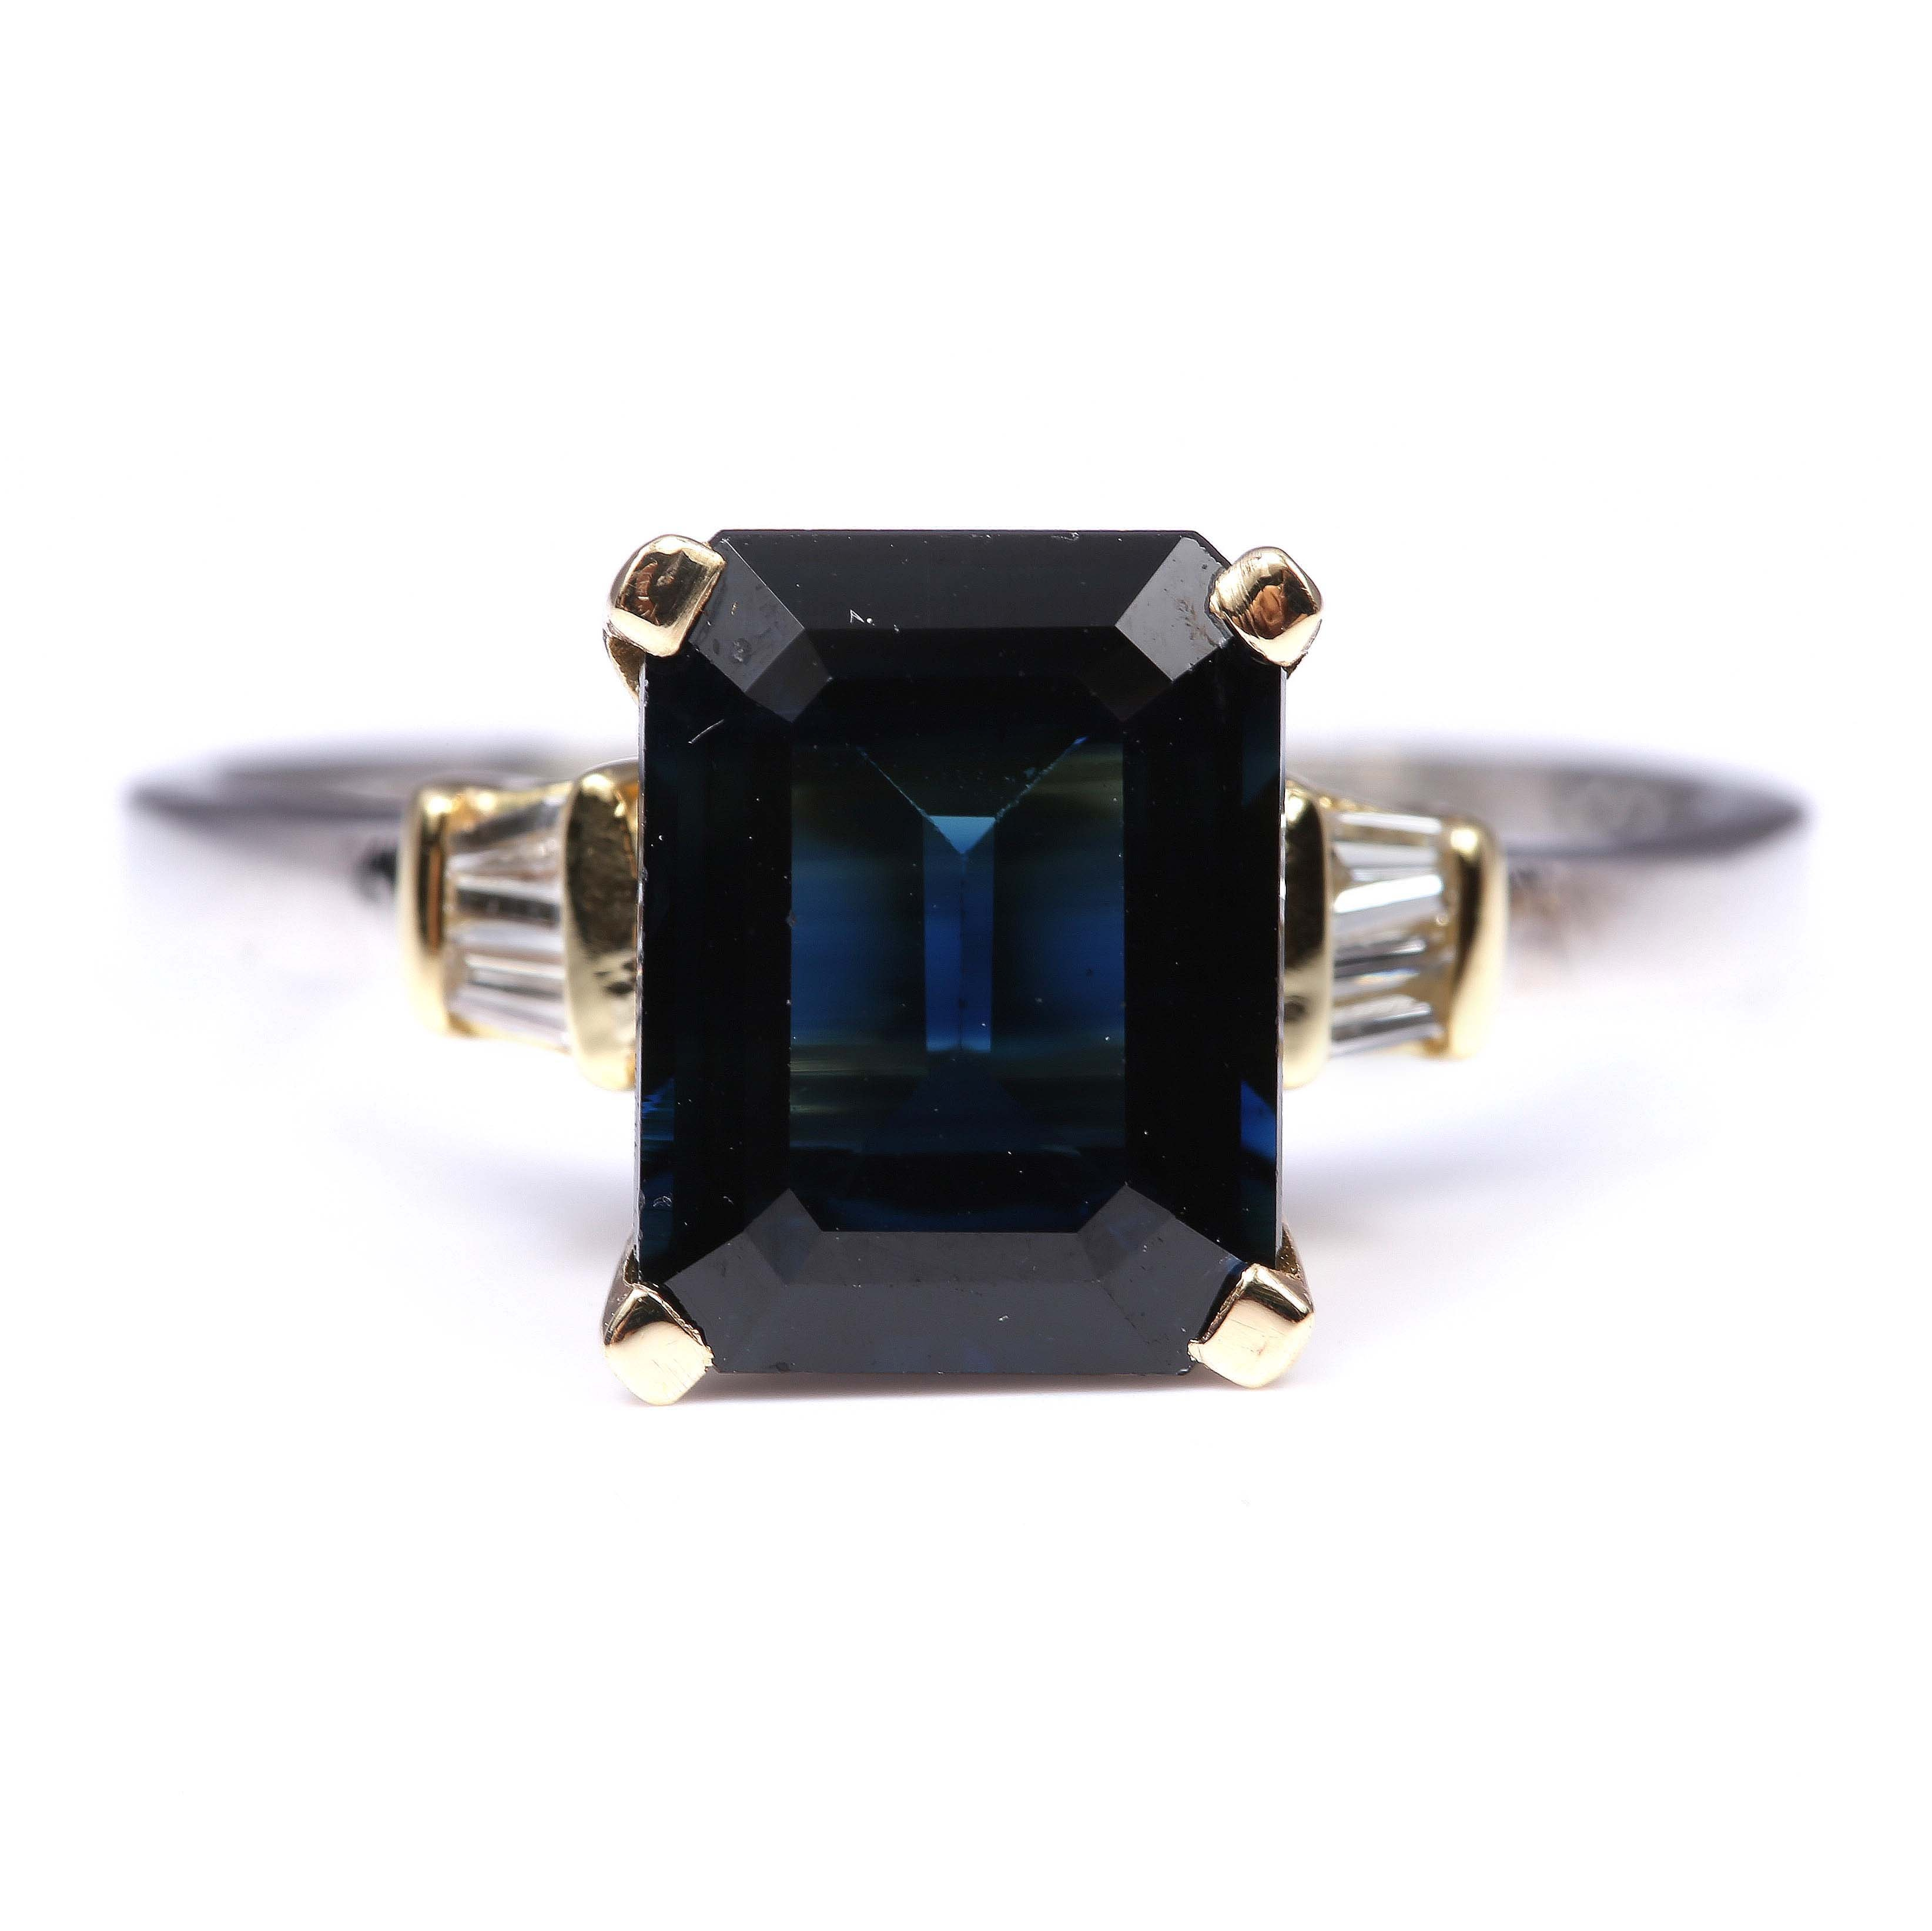 Platinum and 18K Yellow Gold 3.07 CT Sapphire and Diamond Ring